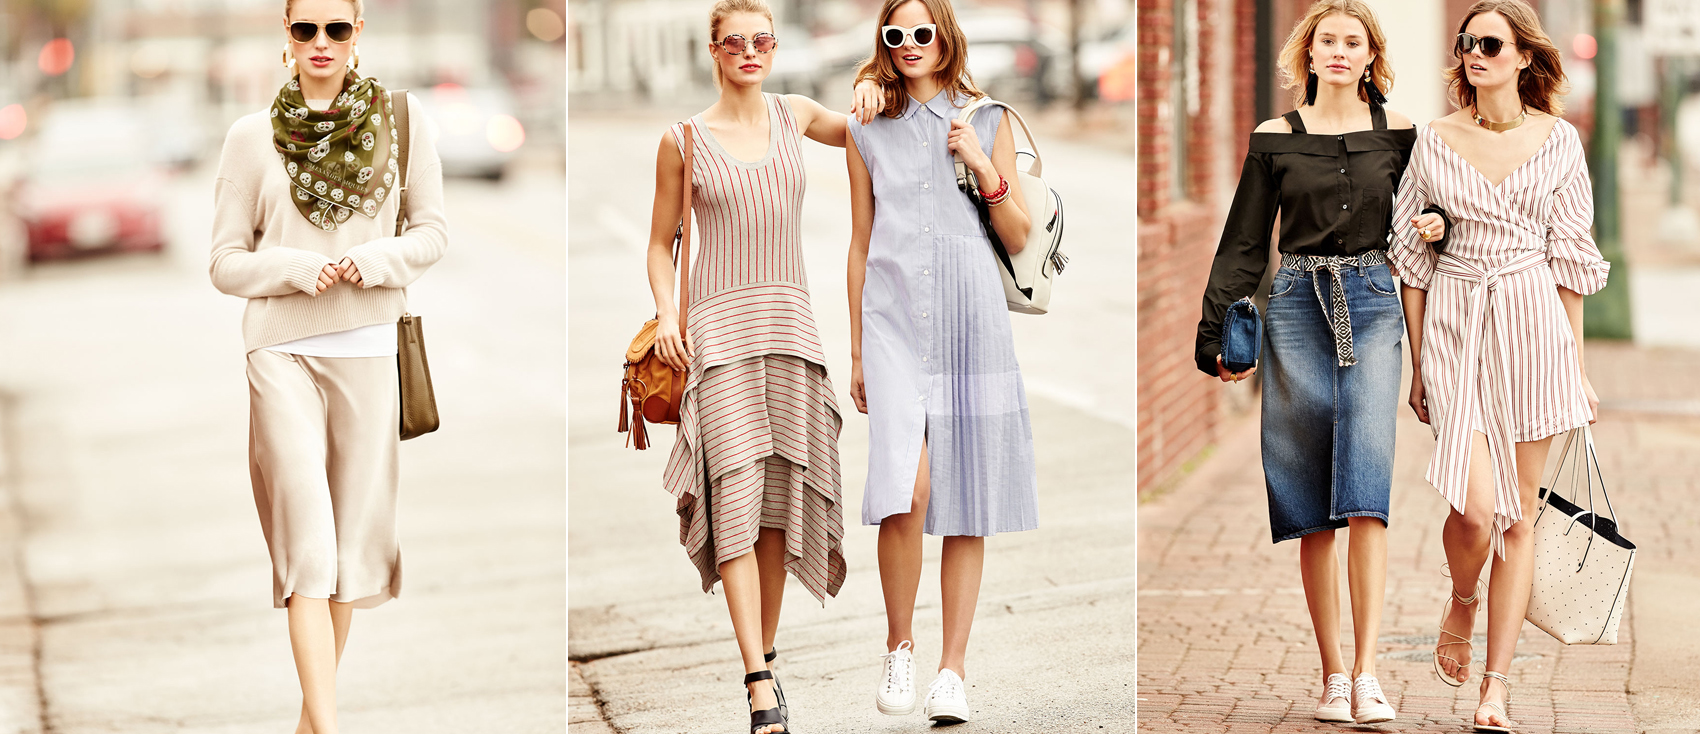 What S New In Fashion Buyer Select Women S Clothing